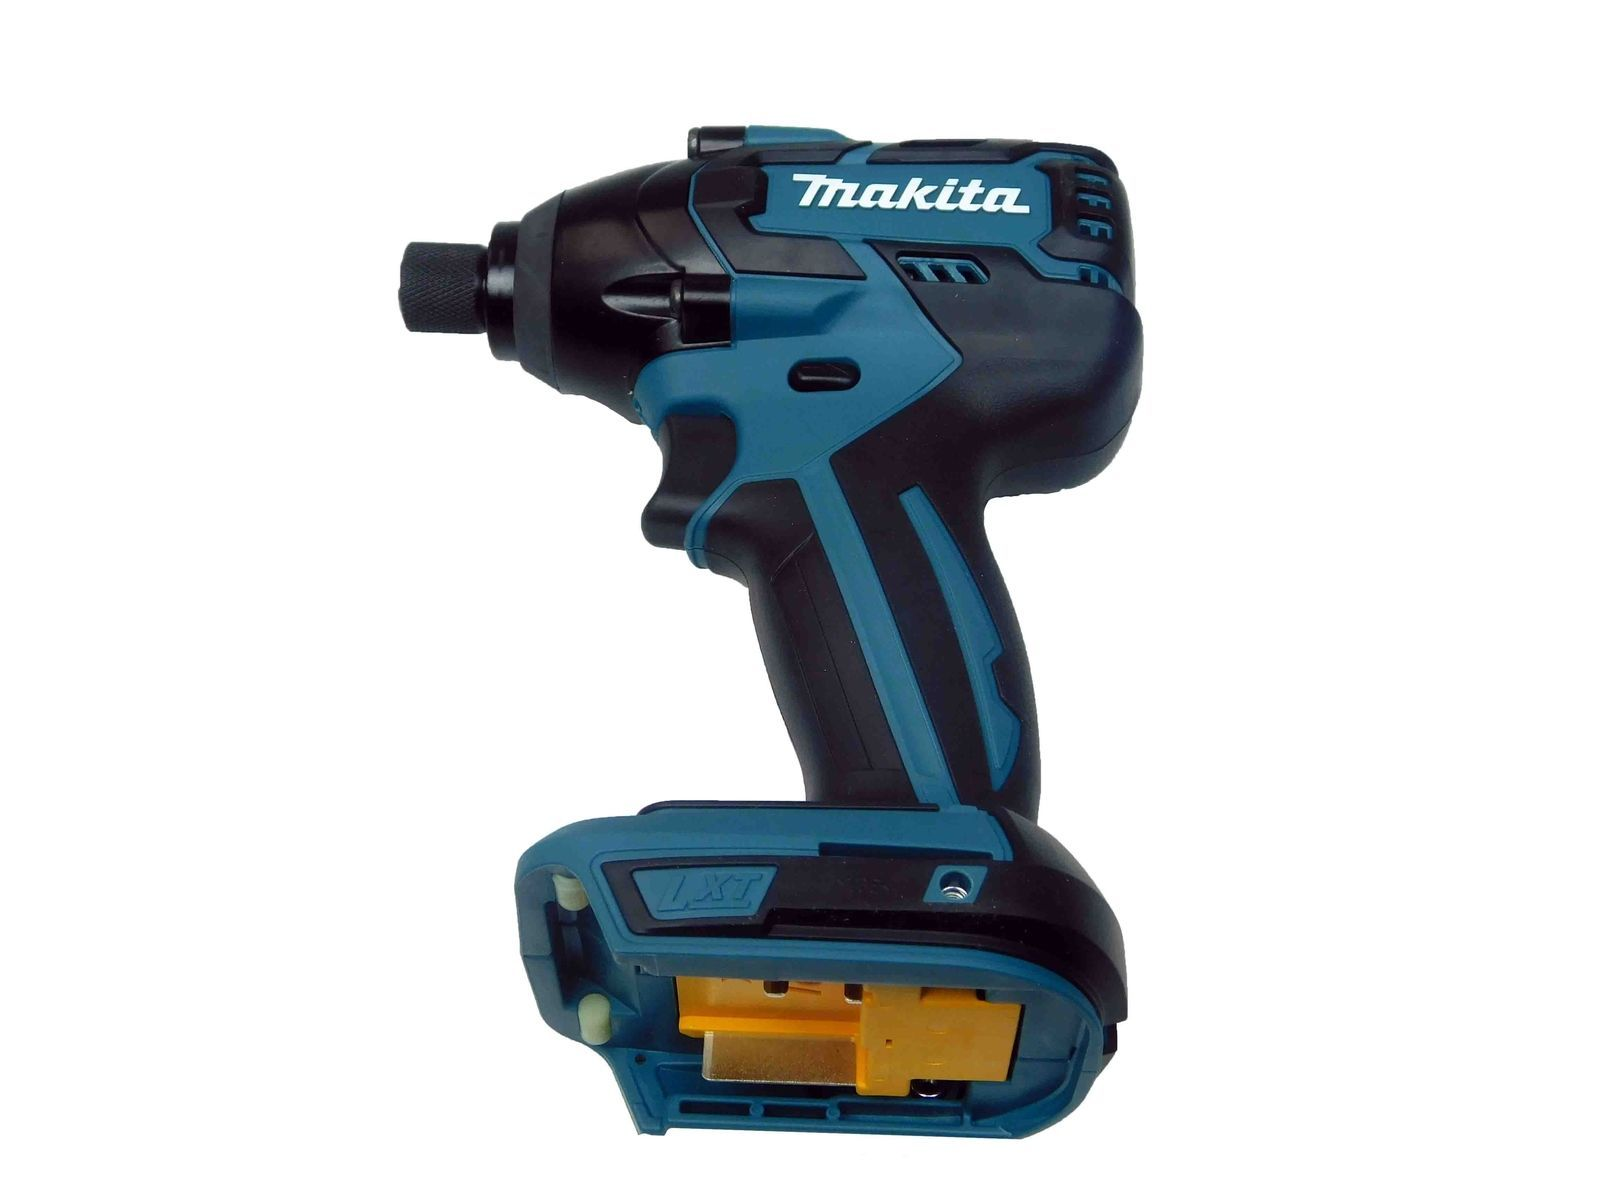 Makita-18V-XDT08-LXT-Lithium-Ion-Brushless-1-4-in.-Cordless-Impact-Driver-image-4